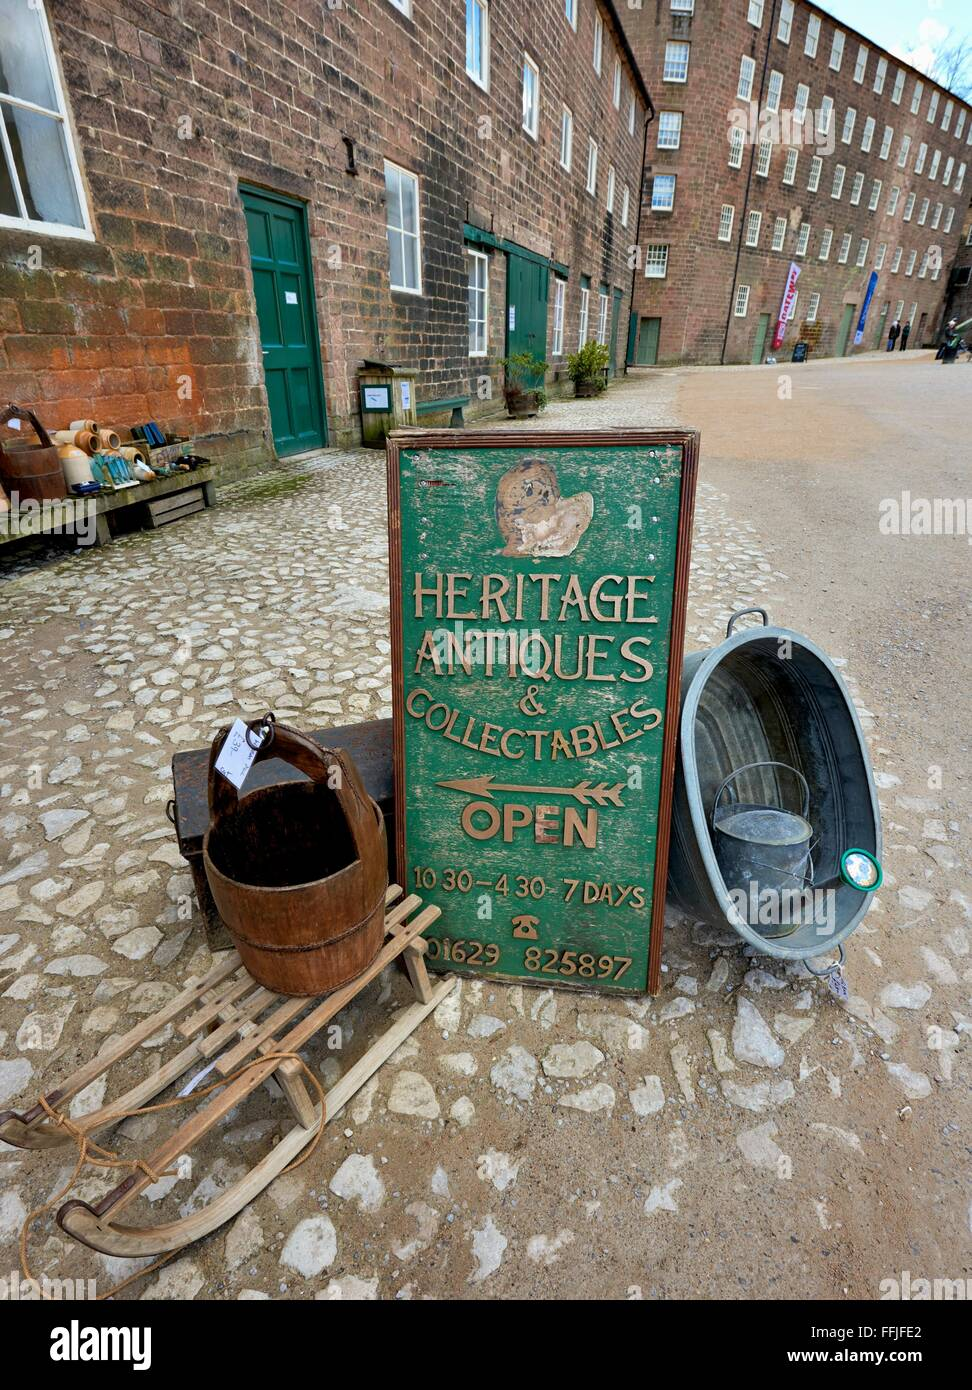 A heritage antiques & collectables open sign - Stock Image